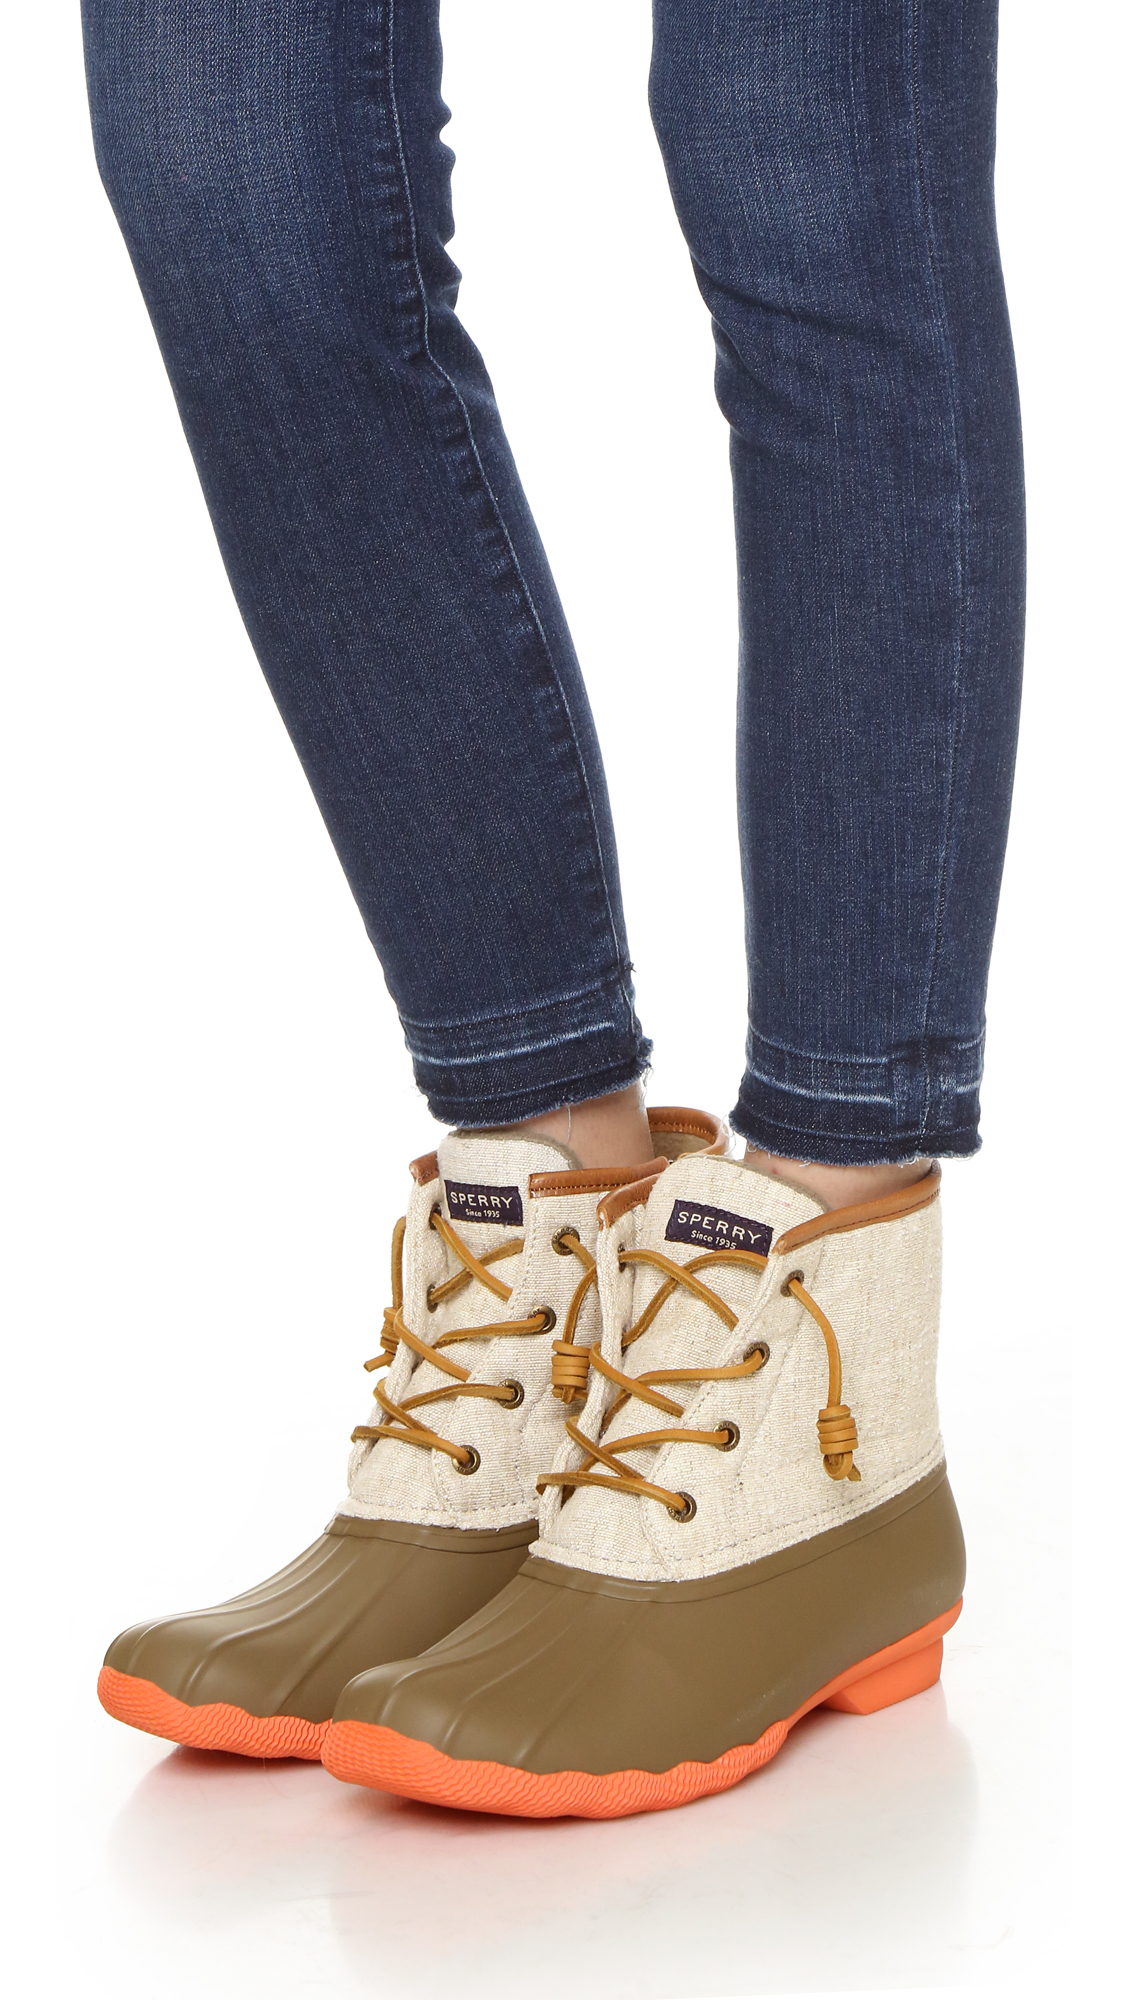 Sperry Top Sider Saltwater Booties